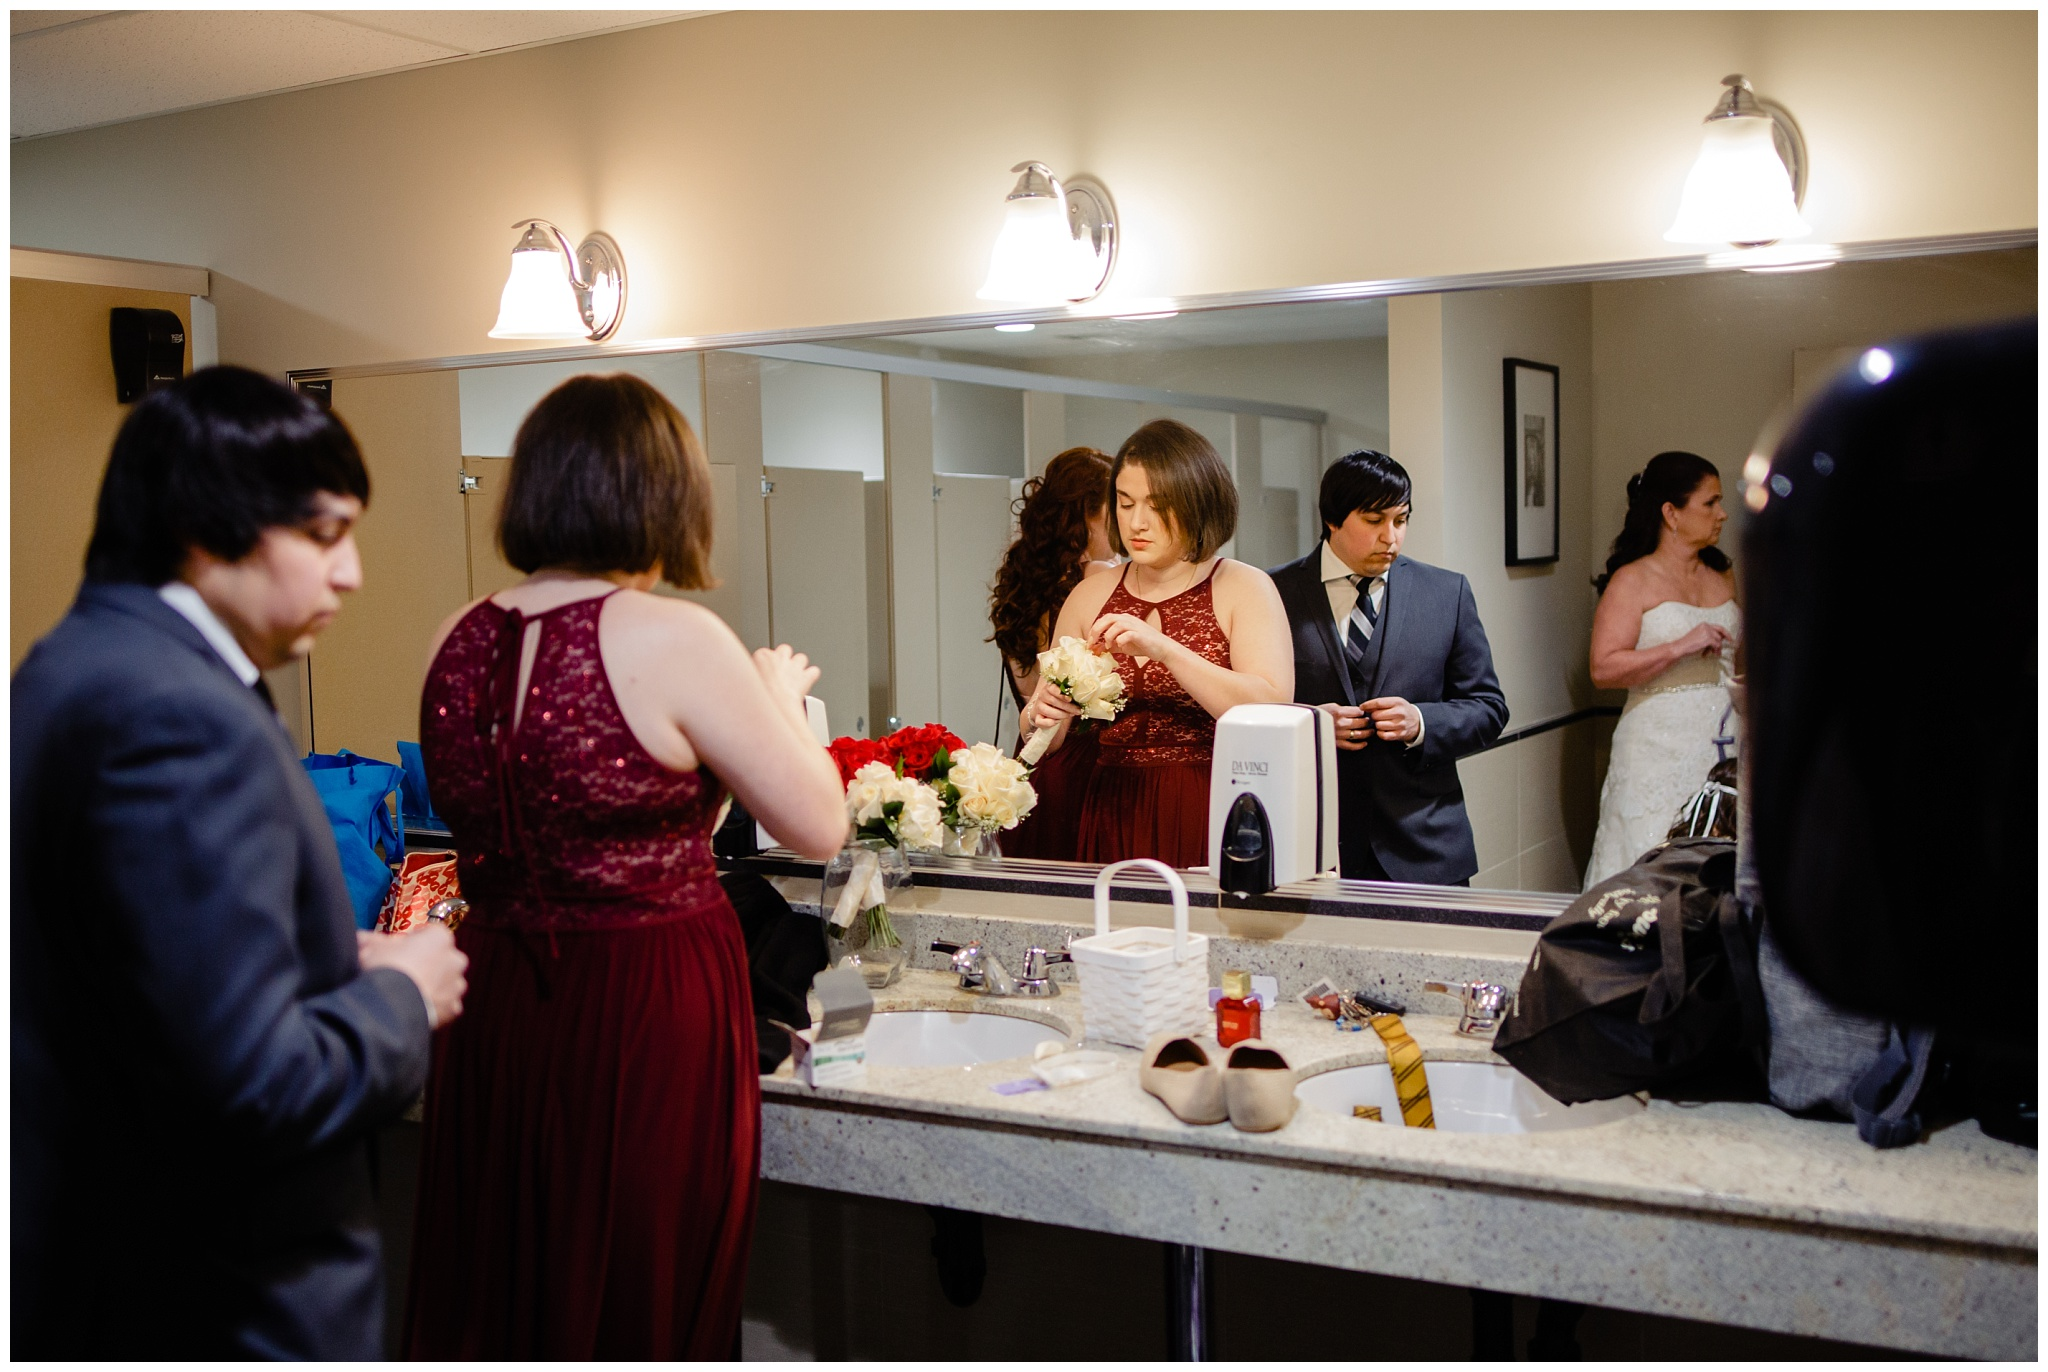 White Rock Intimate Wedding 5 Star Catering Venue Surrey BC Middle Aged Couple_0021.jpg